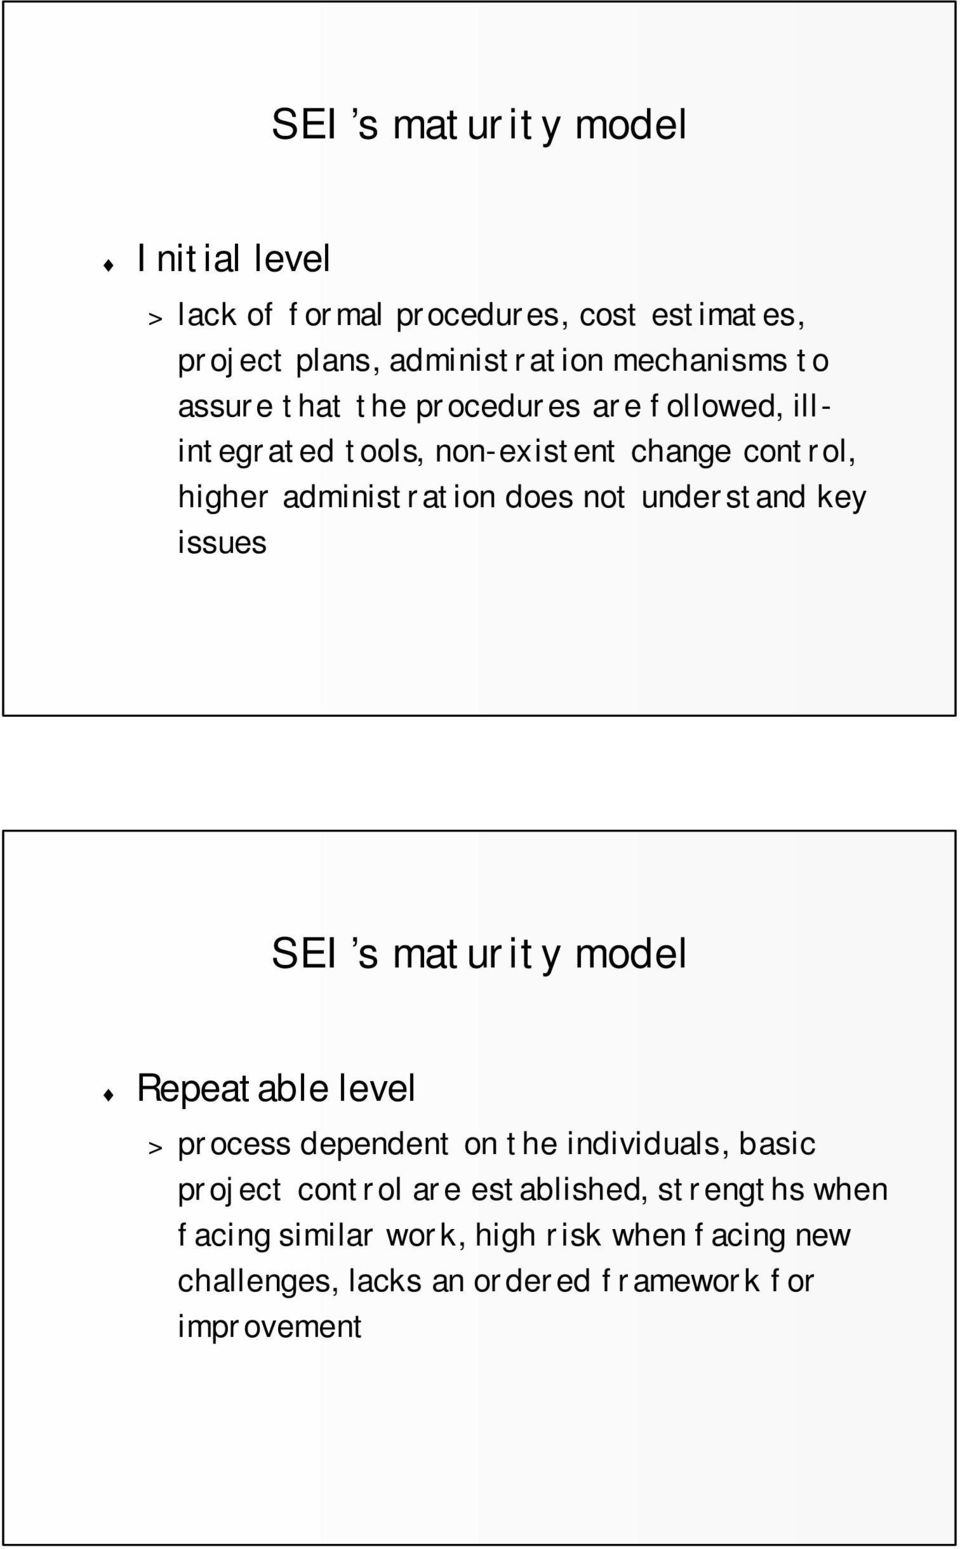 understand key issues SEI s maturity model Repeatable level > process dependent on the individuals, basic project control are